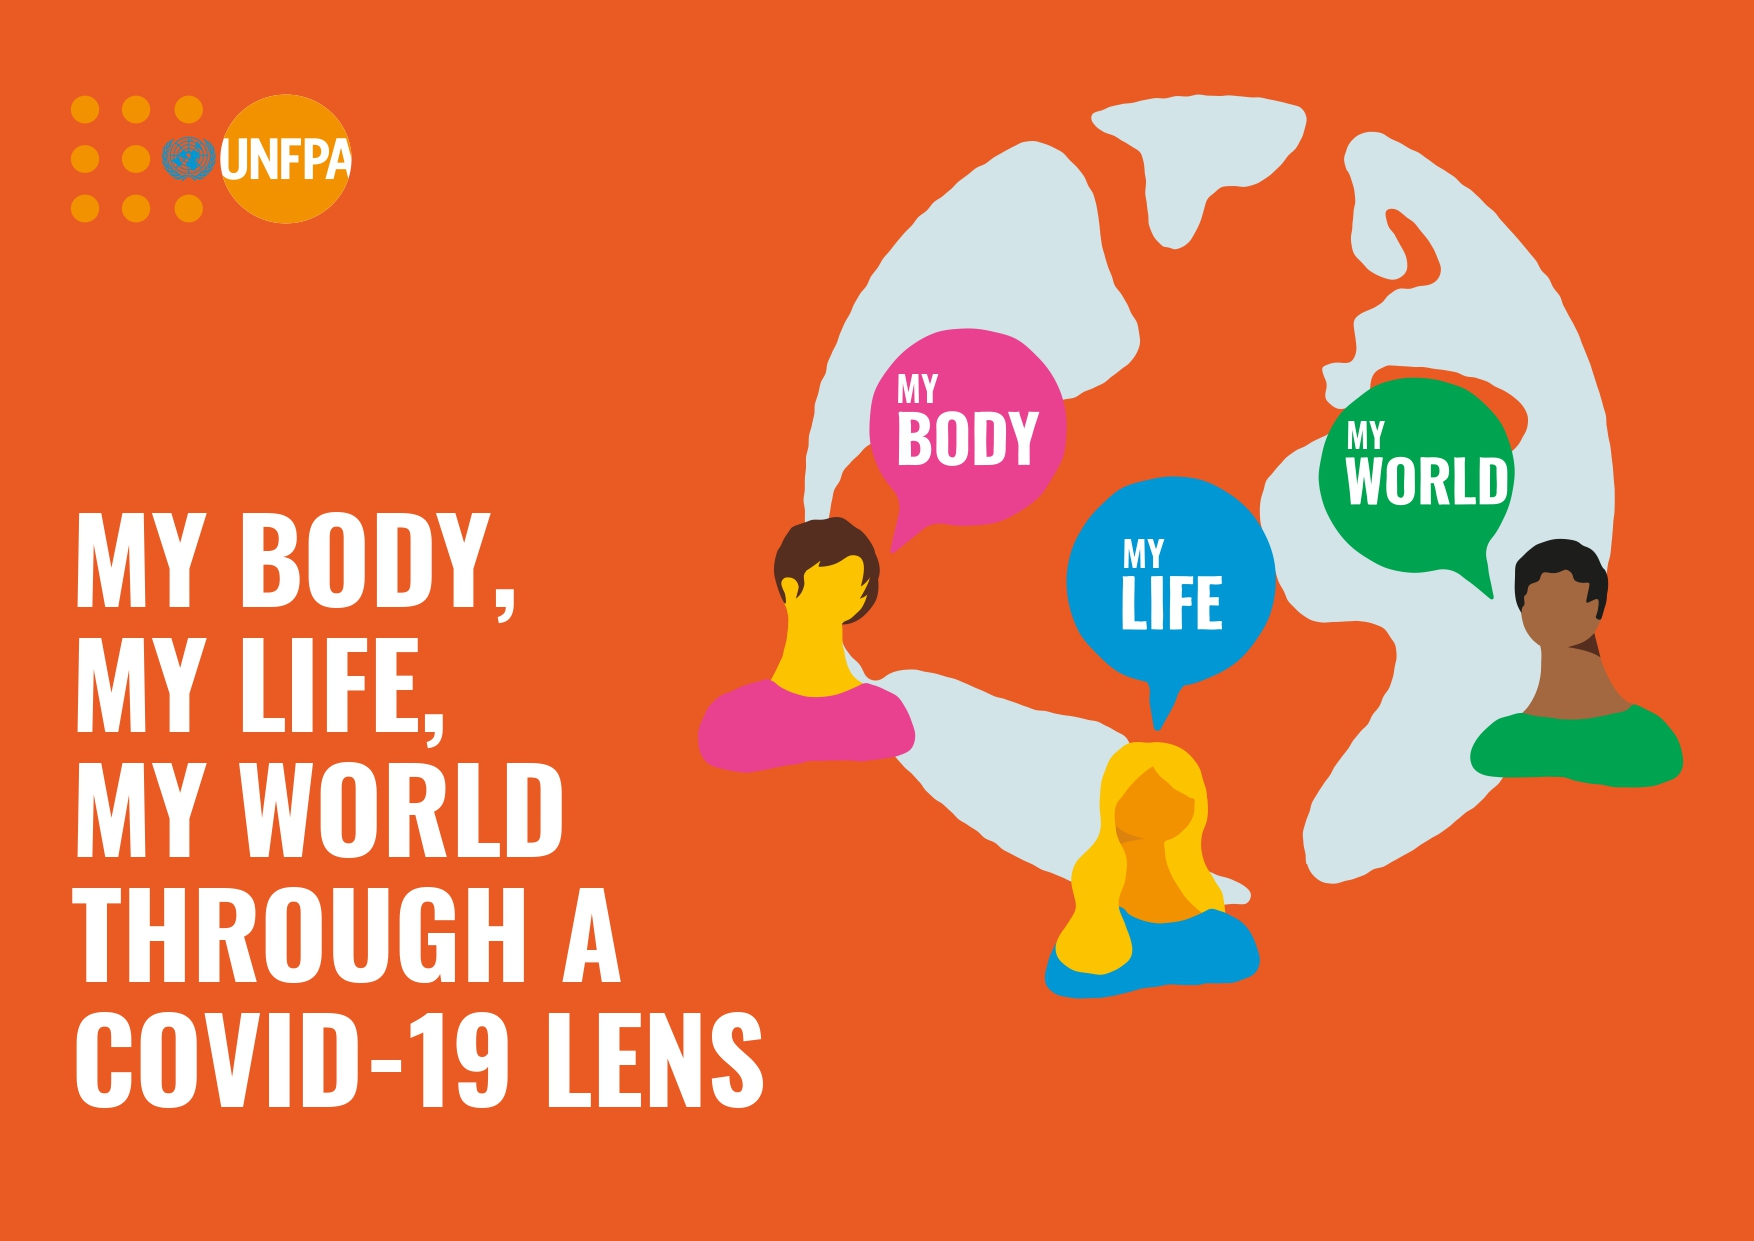 My Body, My Life, My World Through a COVID-19 Lens